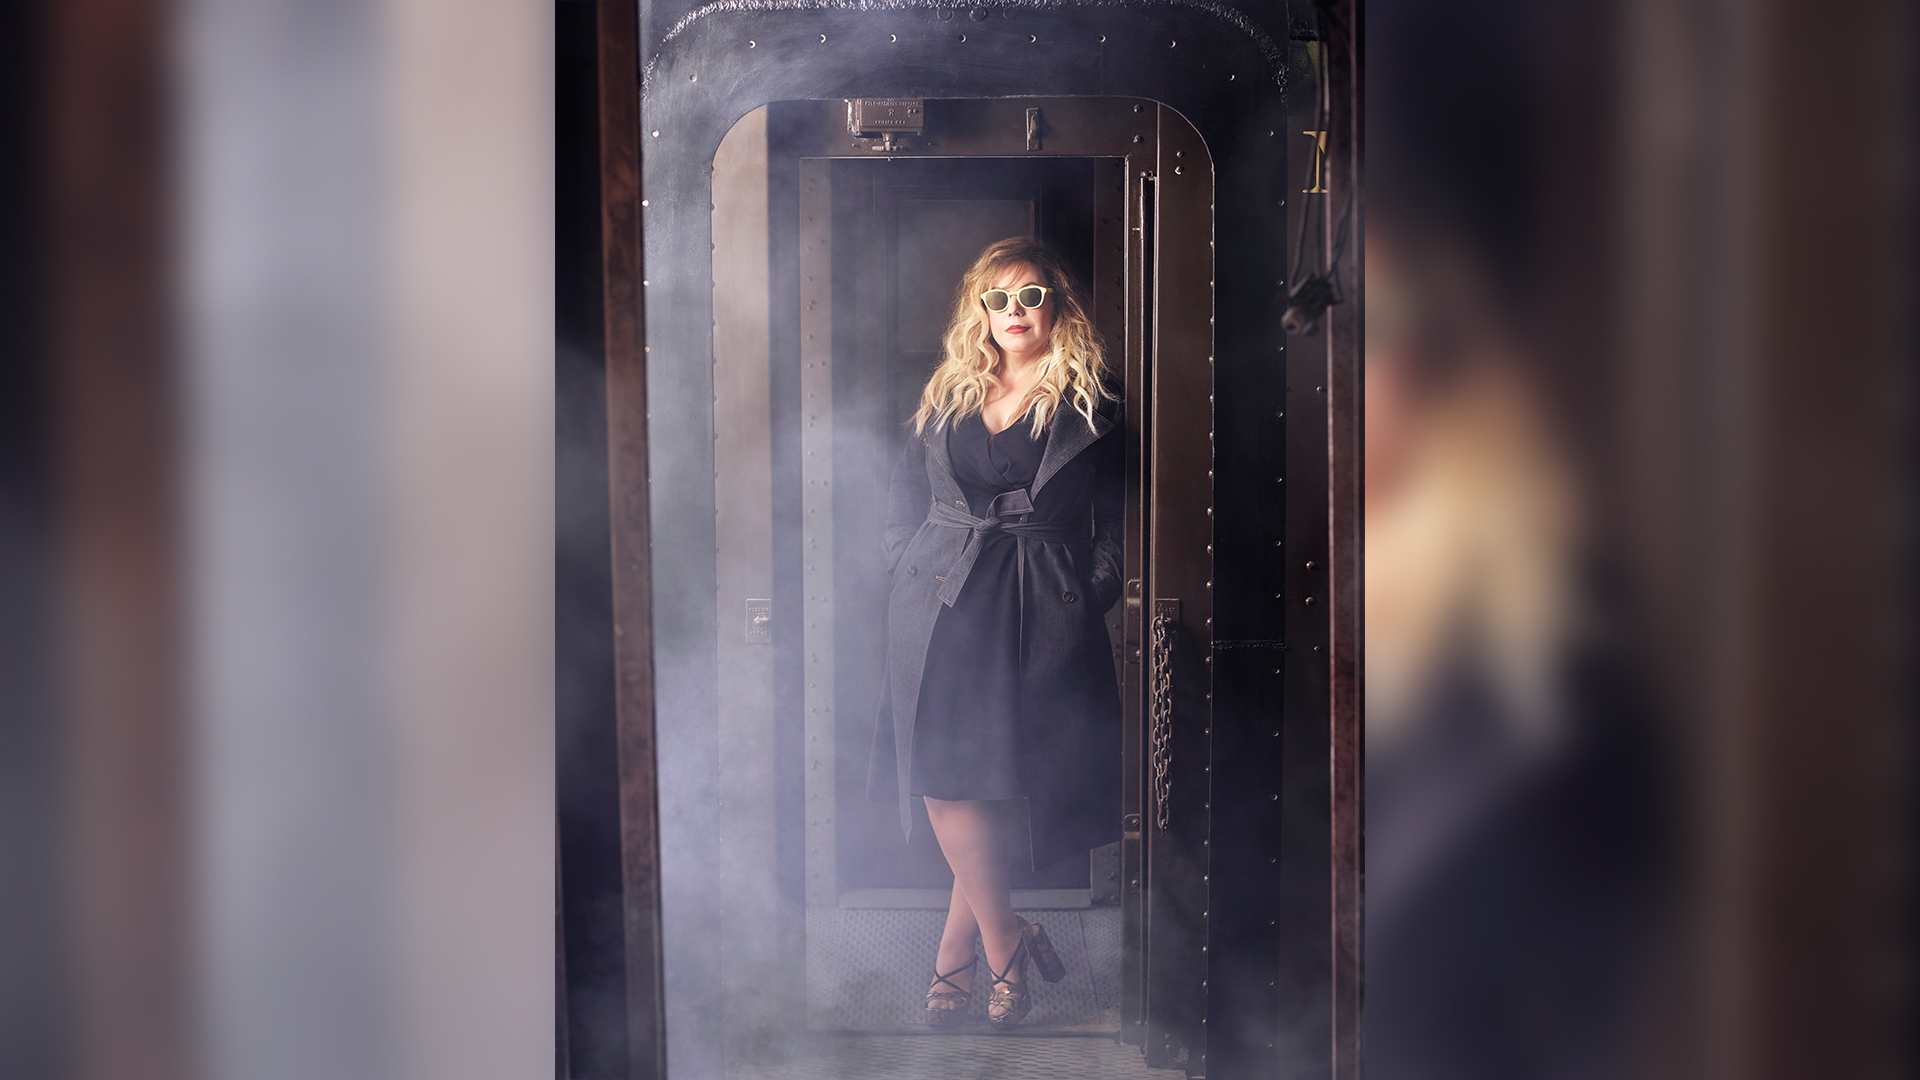 Kirsten Vangsness, and her Criminal Minds co-stars, celebrate the end of the line in style